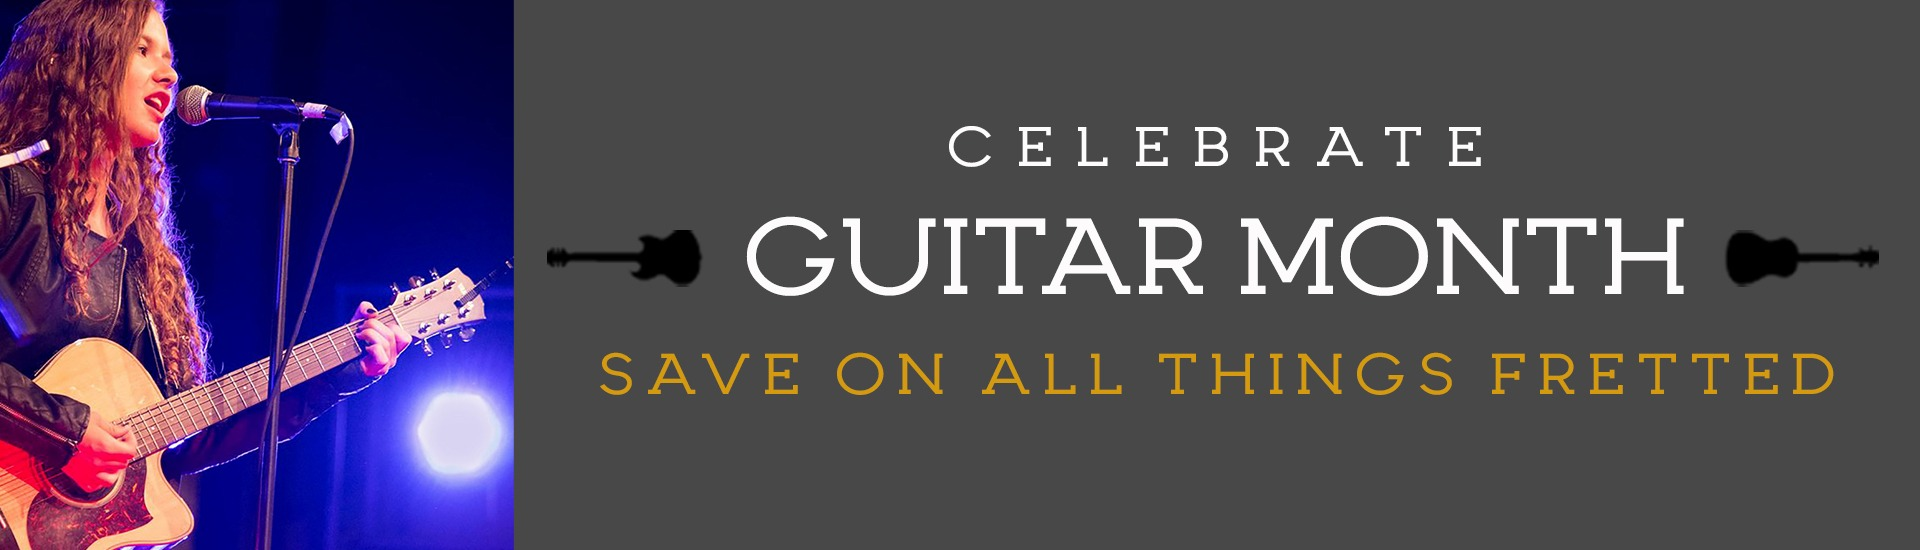 Guitar Month celebration specials and events